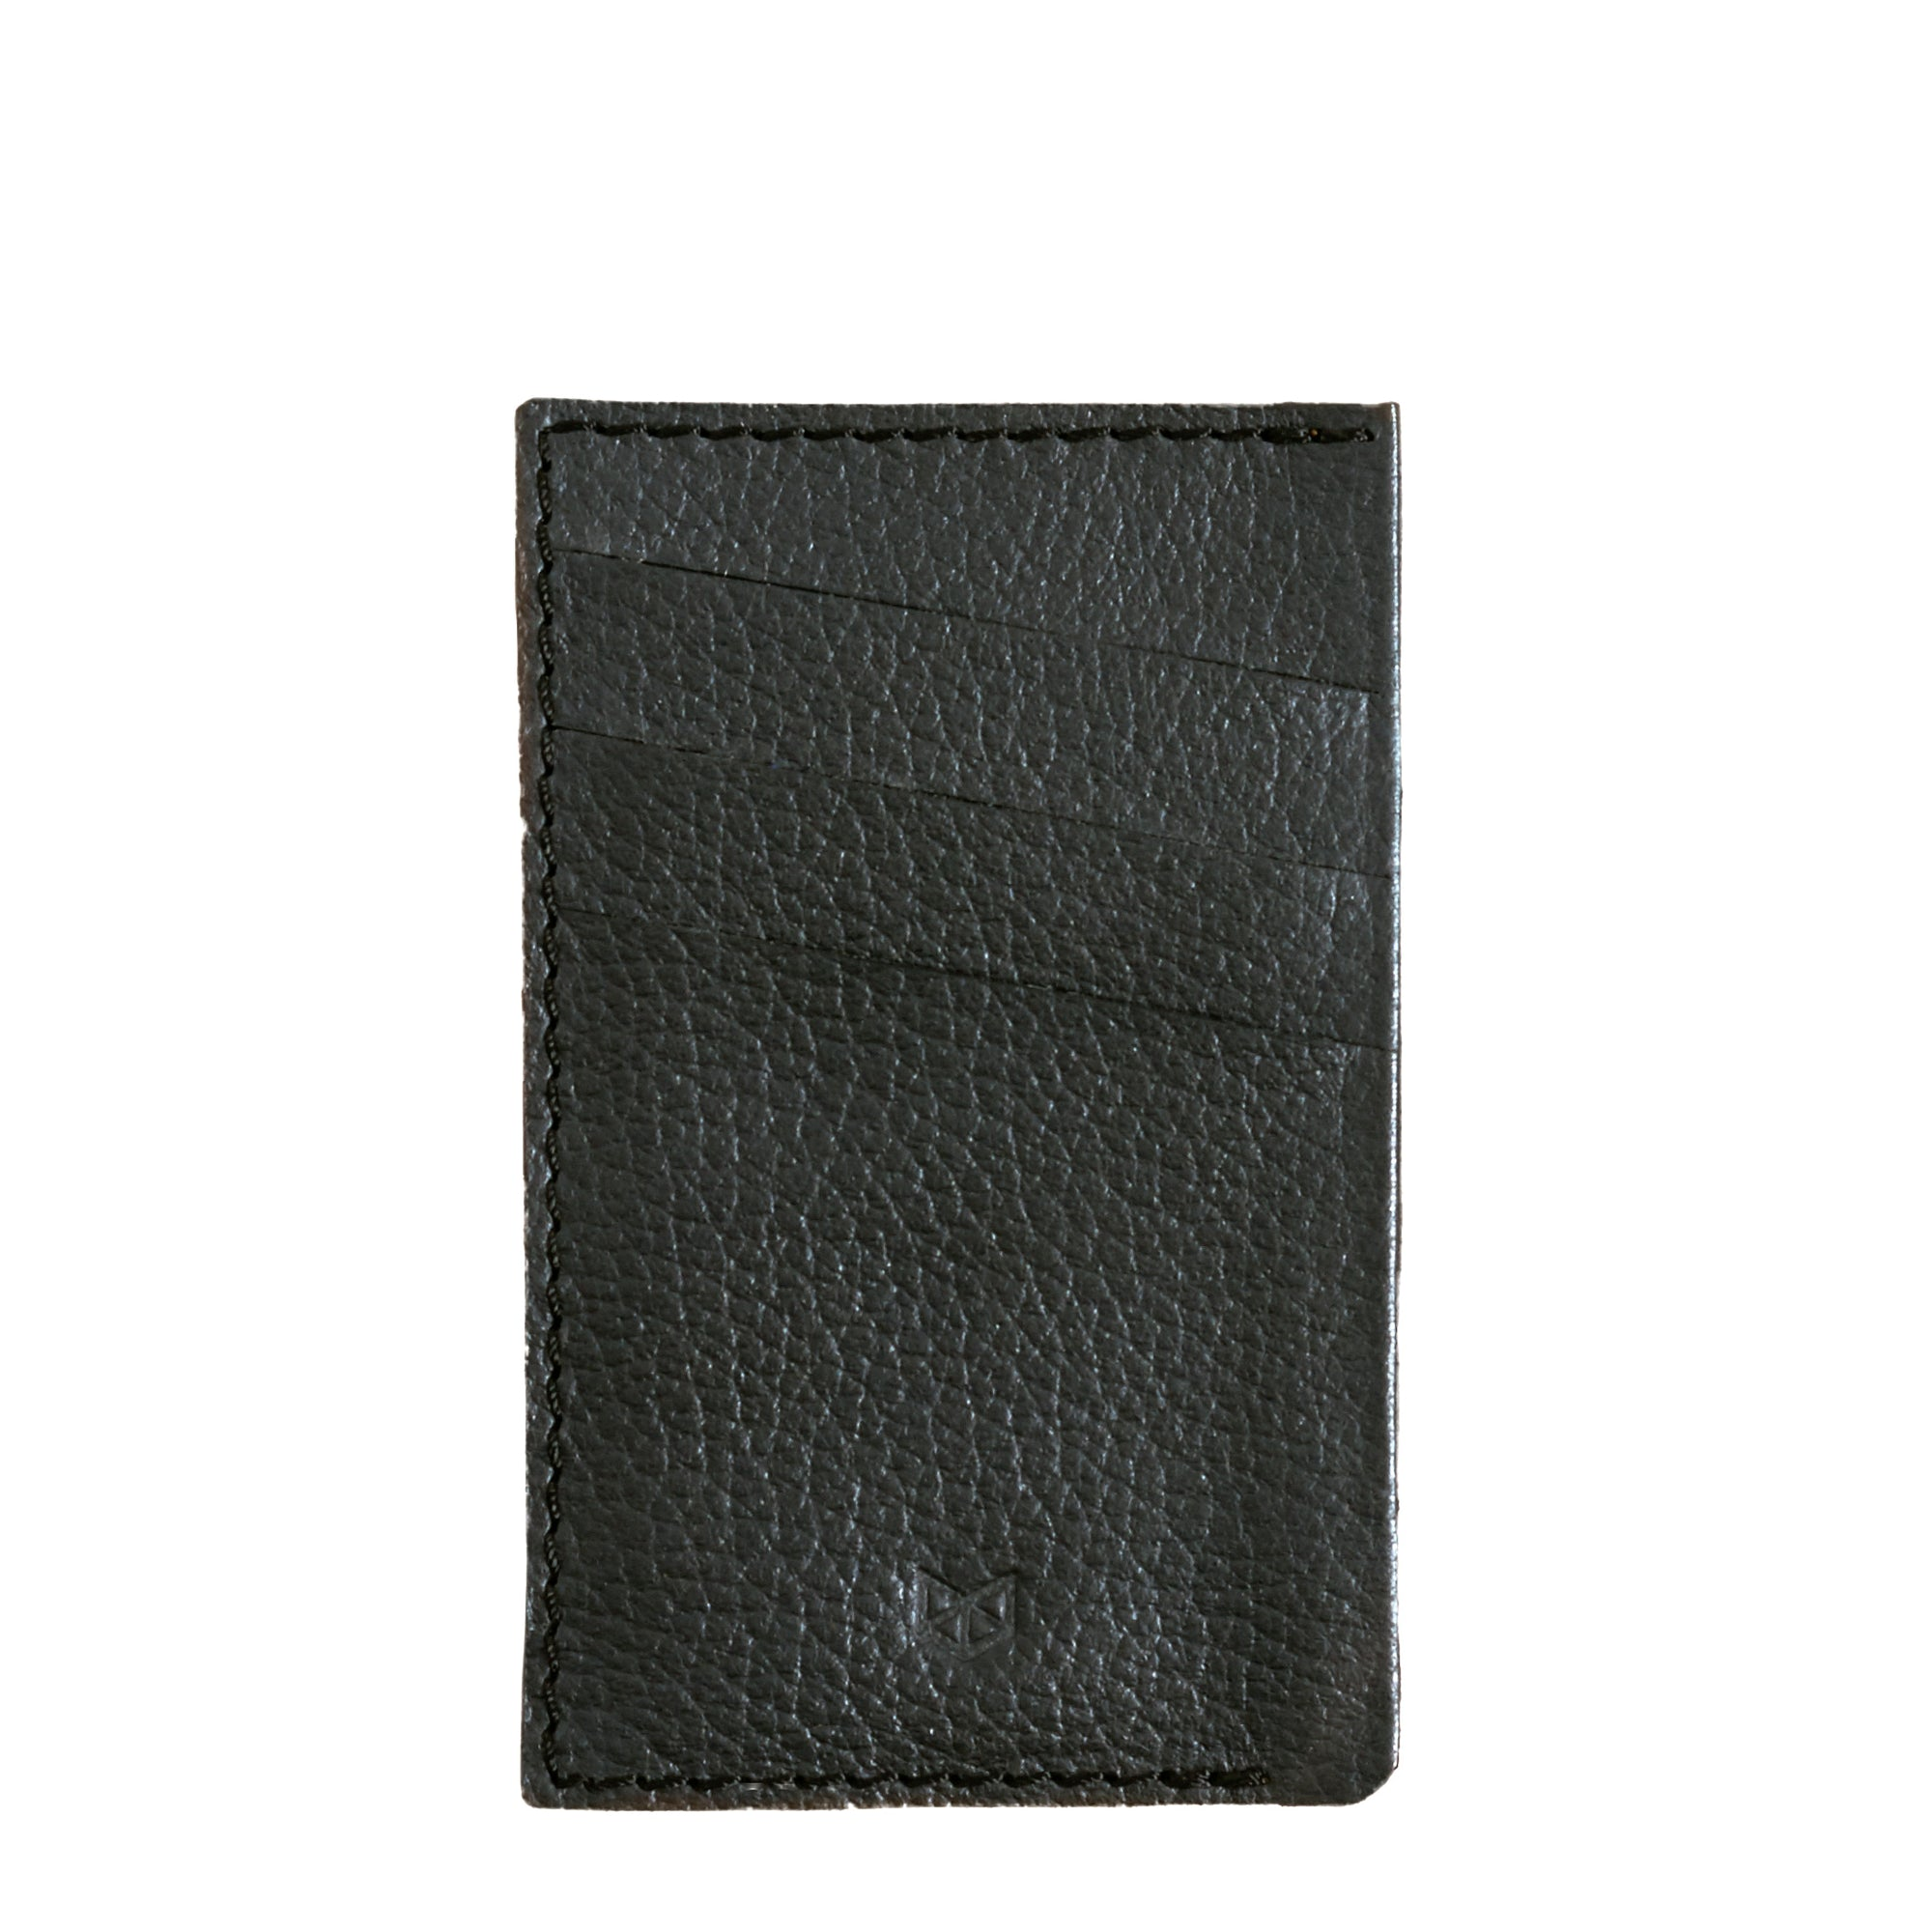 Front Cover. Card Holder Wallet Black by Capra Leather